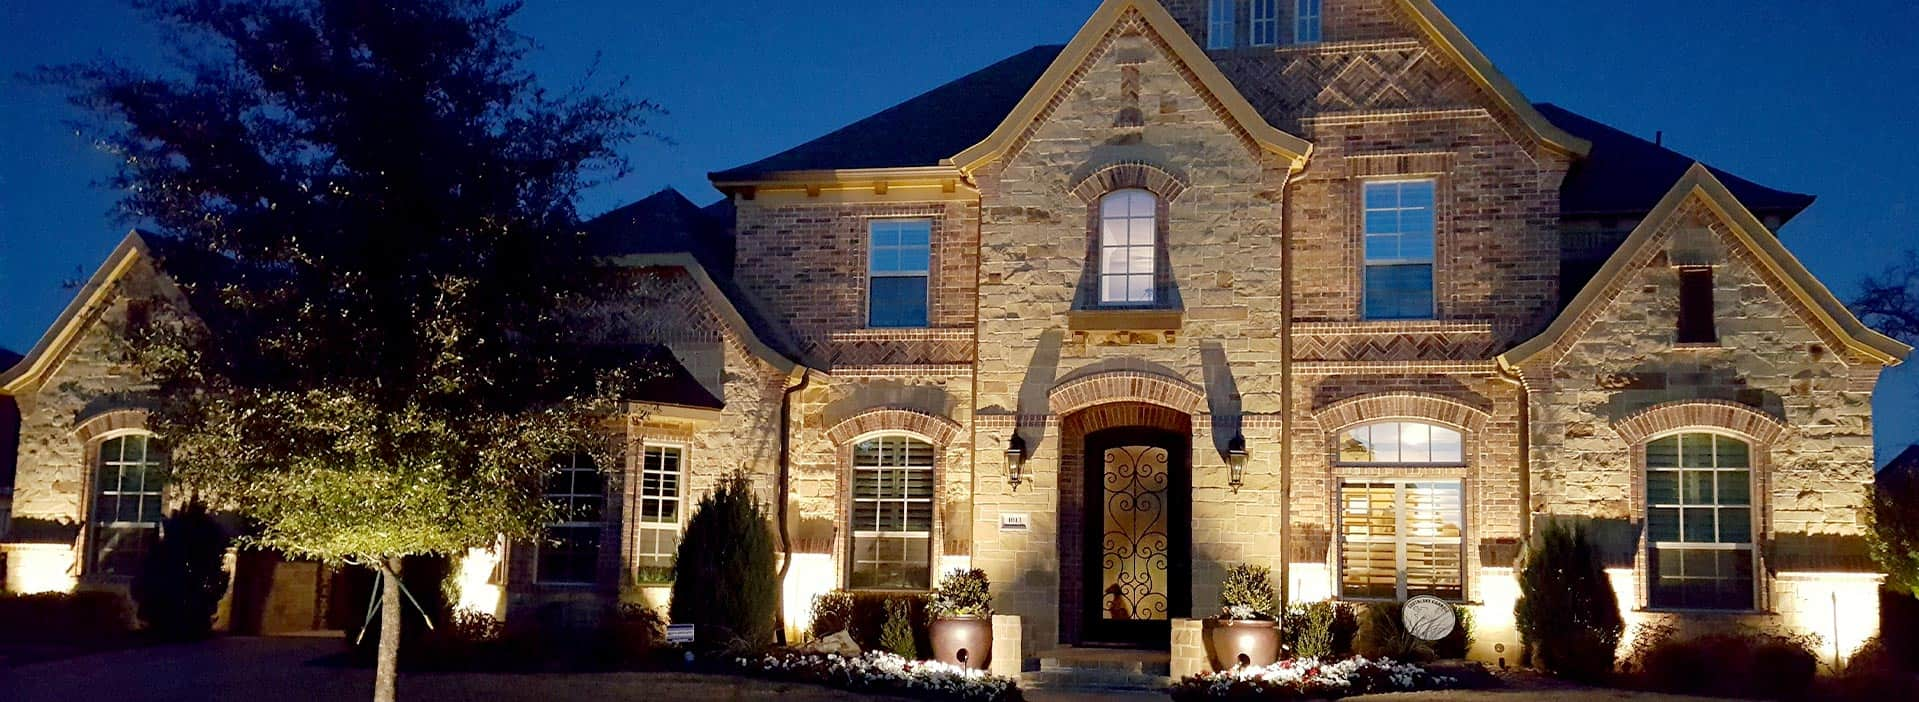 Bright lights shine up at the outdoor face of a beautiful Dallas home